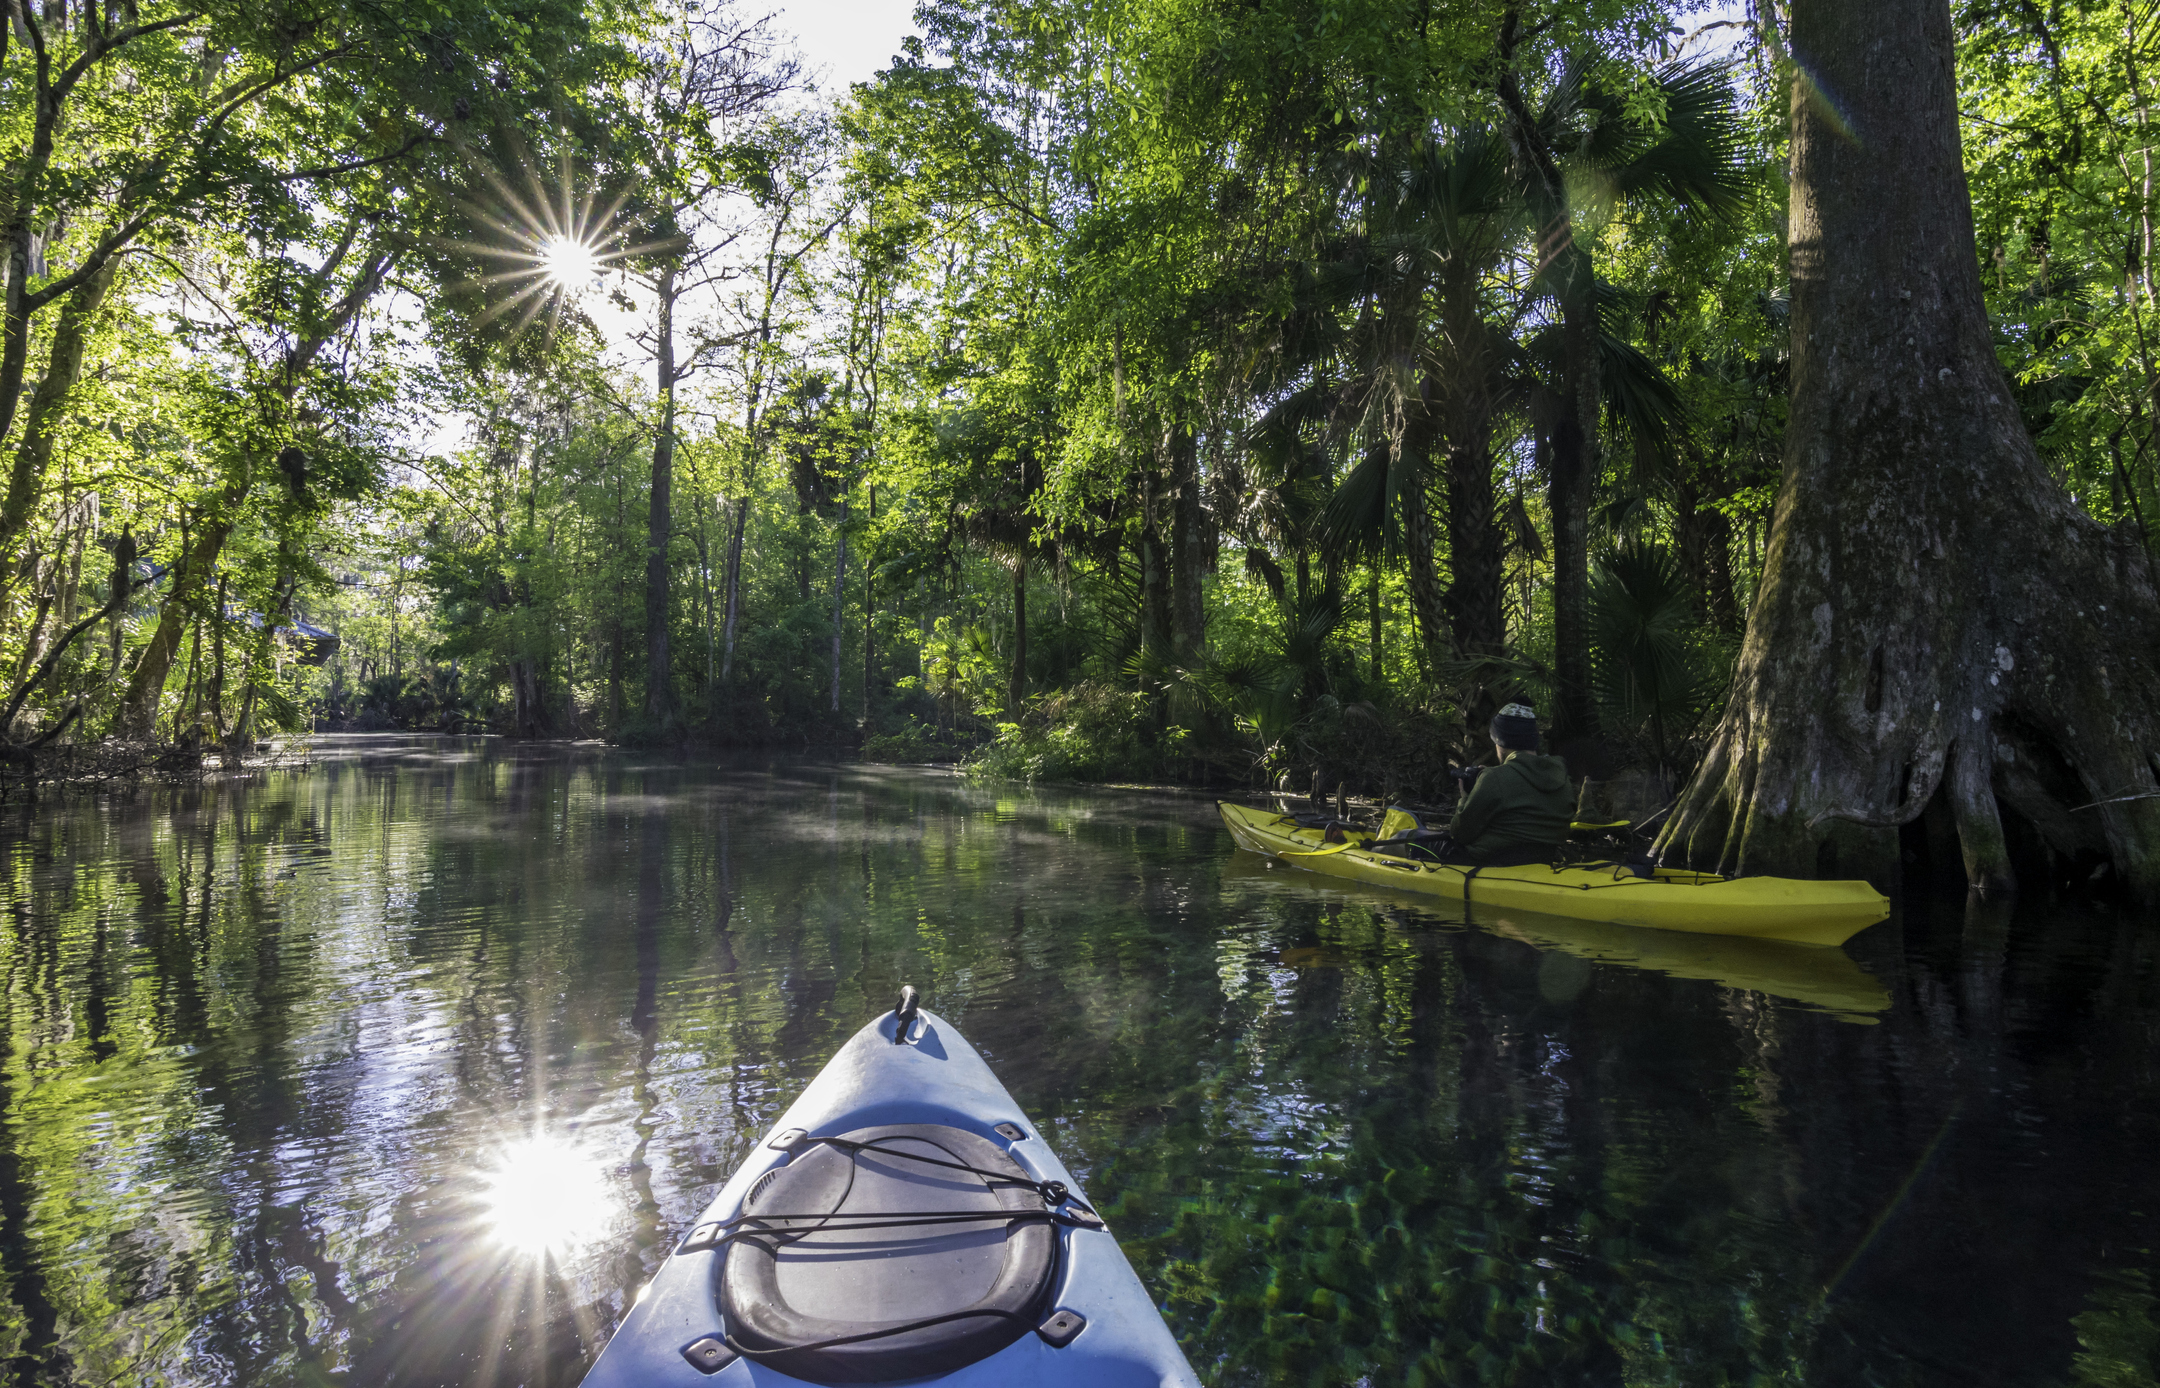 A kayaker in morning light on the Silver River at Silver Springs State Park, around new condos in florida